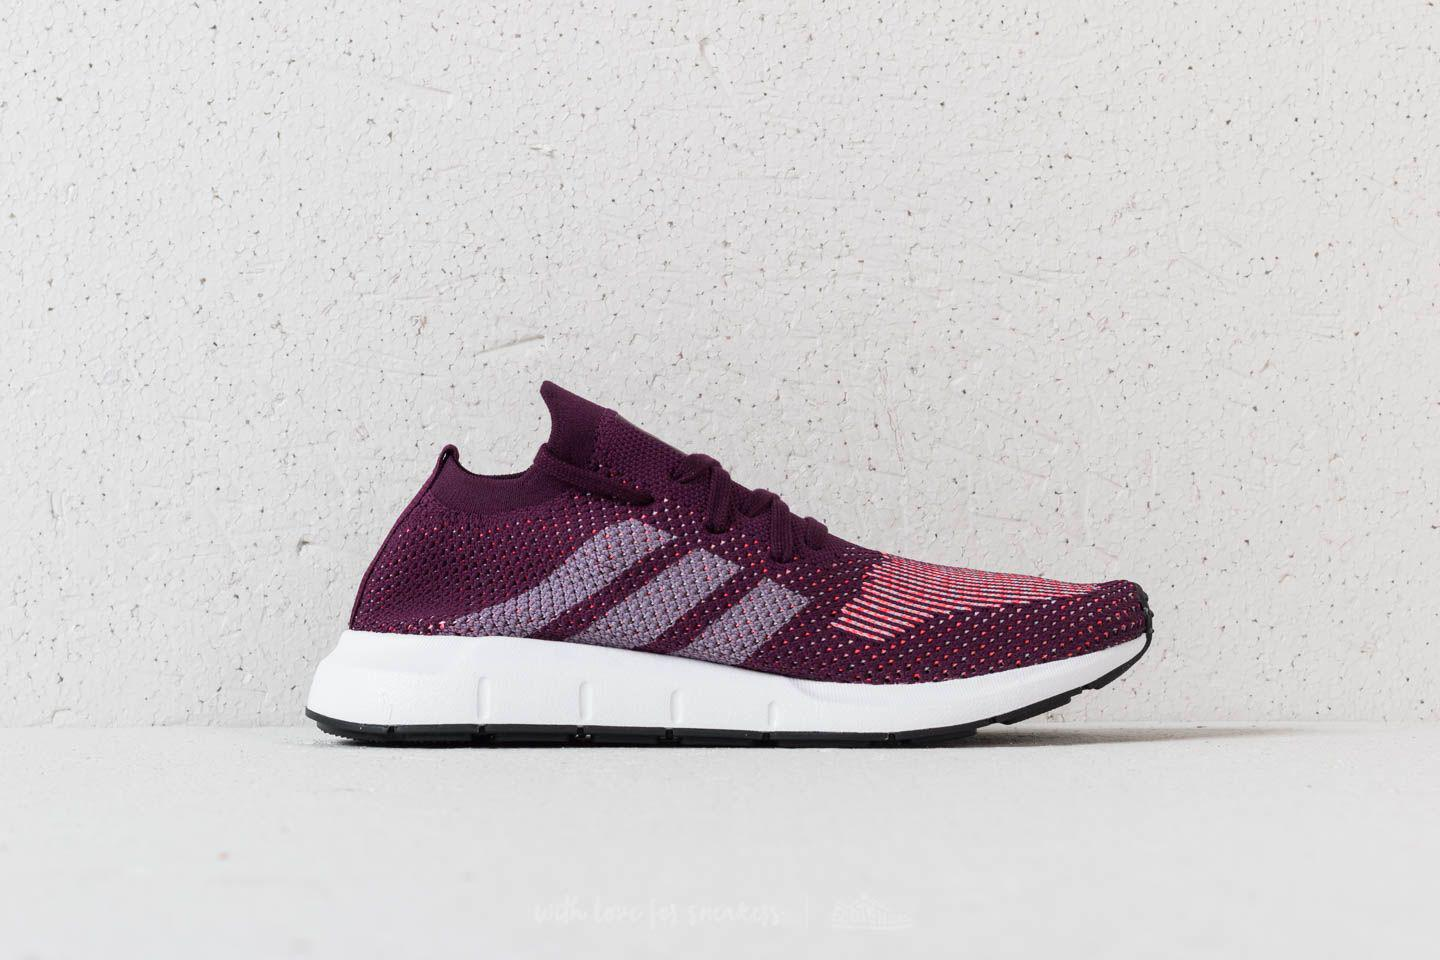 adidas Adidas Swift Run Primeknit W Nit/ Ftw White/ Core Black